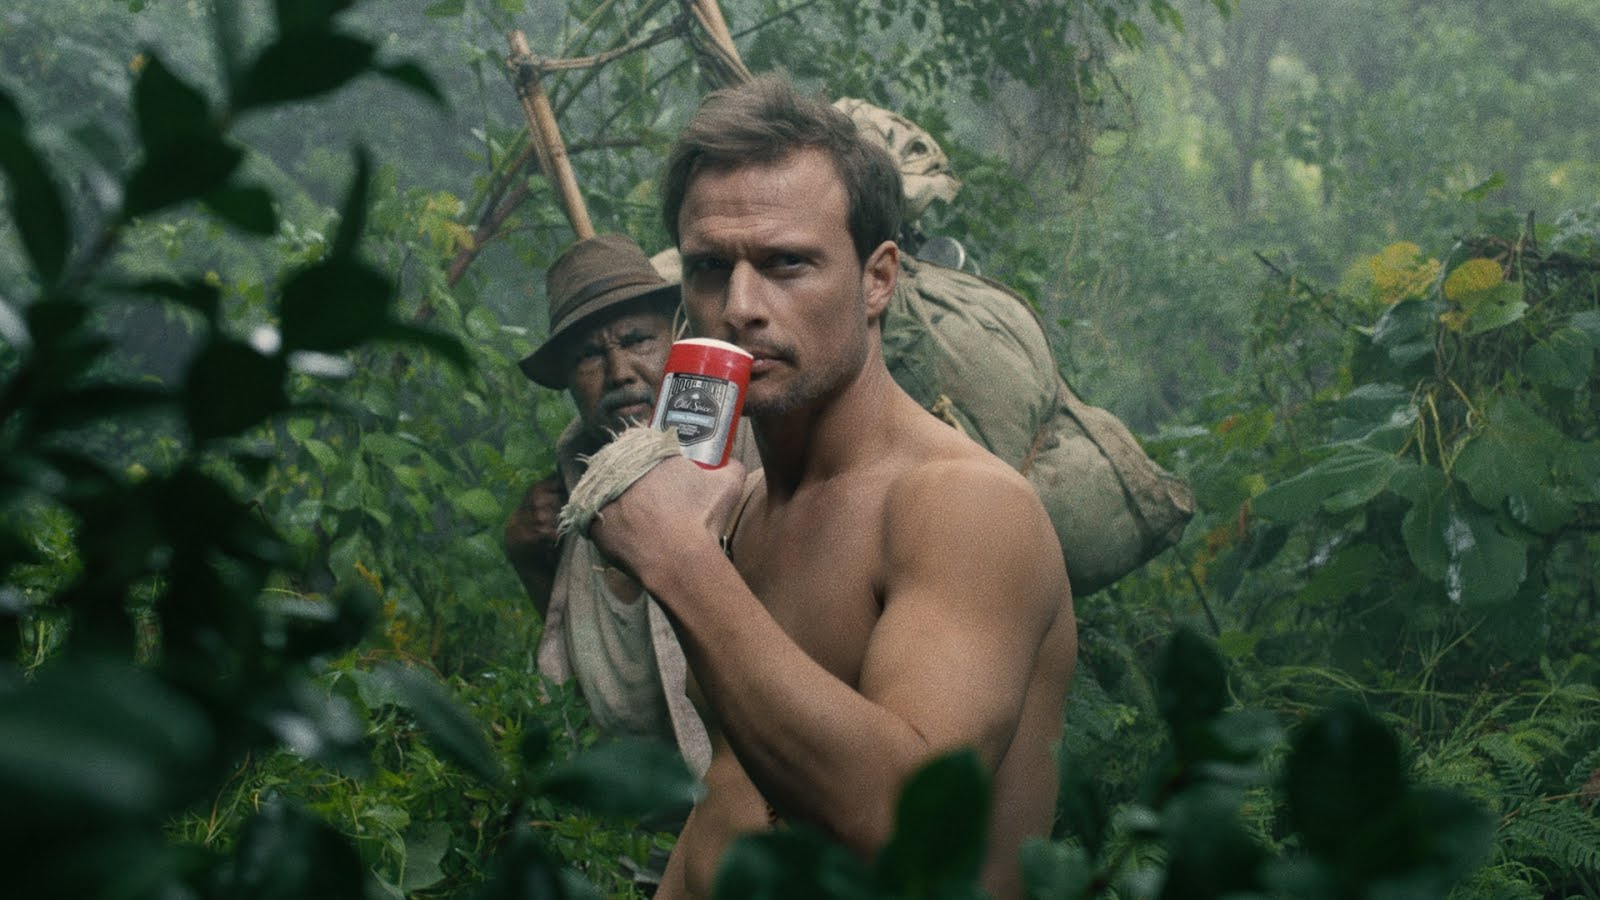 Axel Kiener is the Old Spice 'Jungle Hero' in W+K's Latest Ad